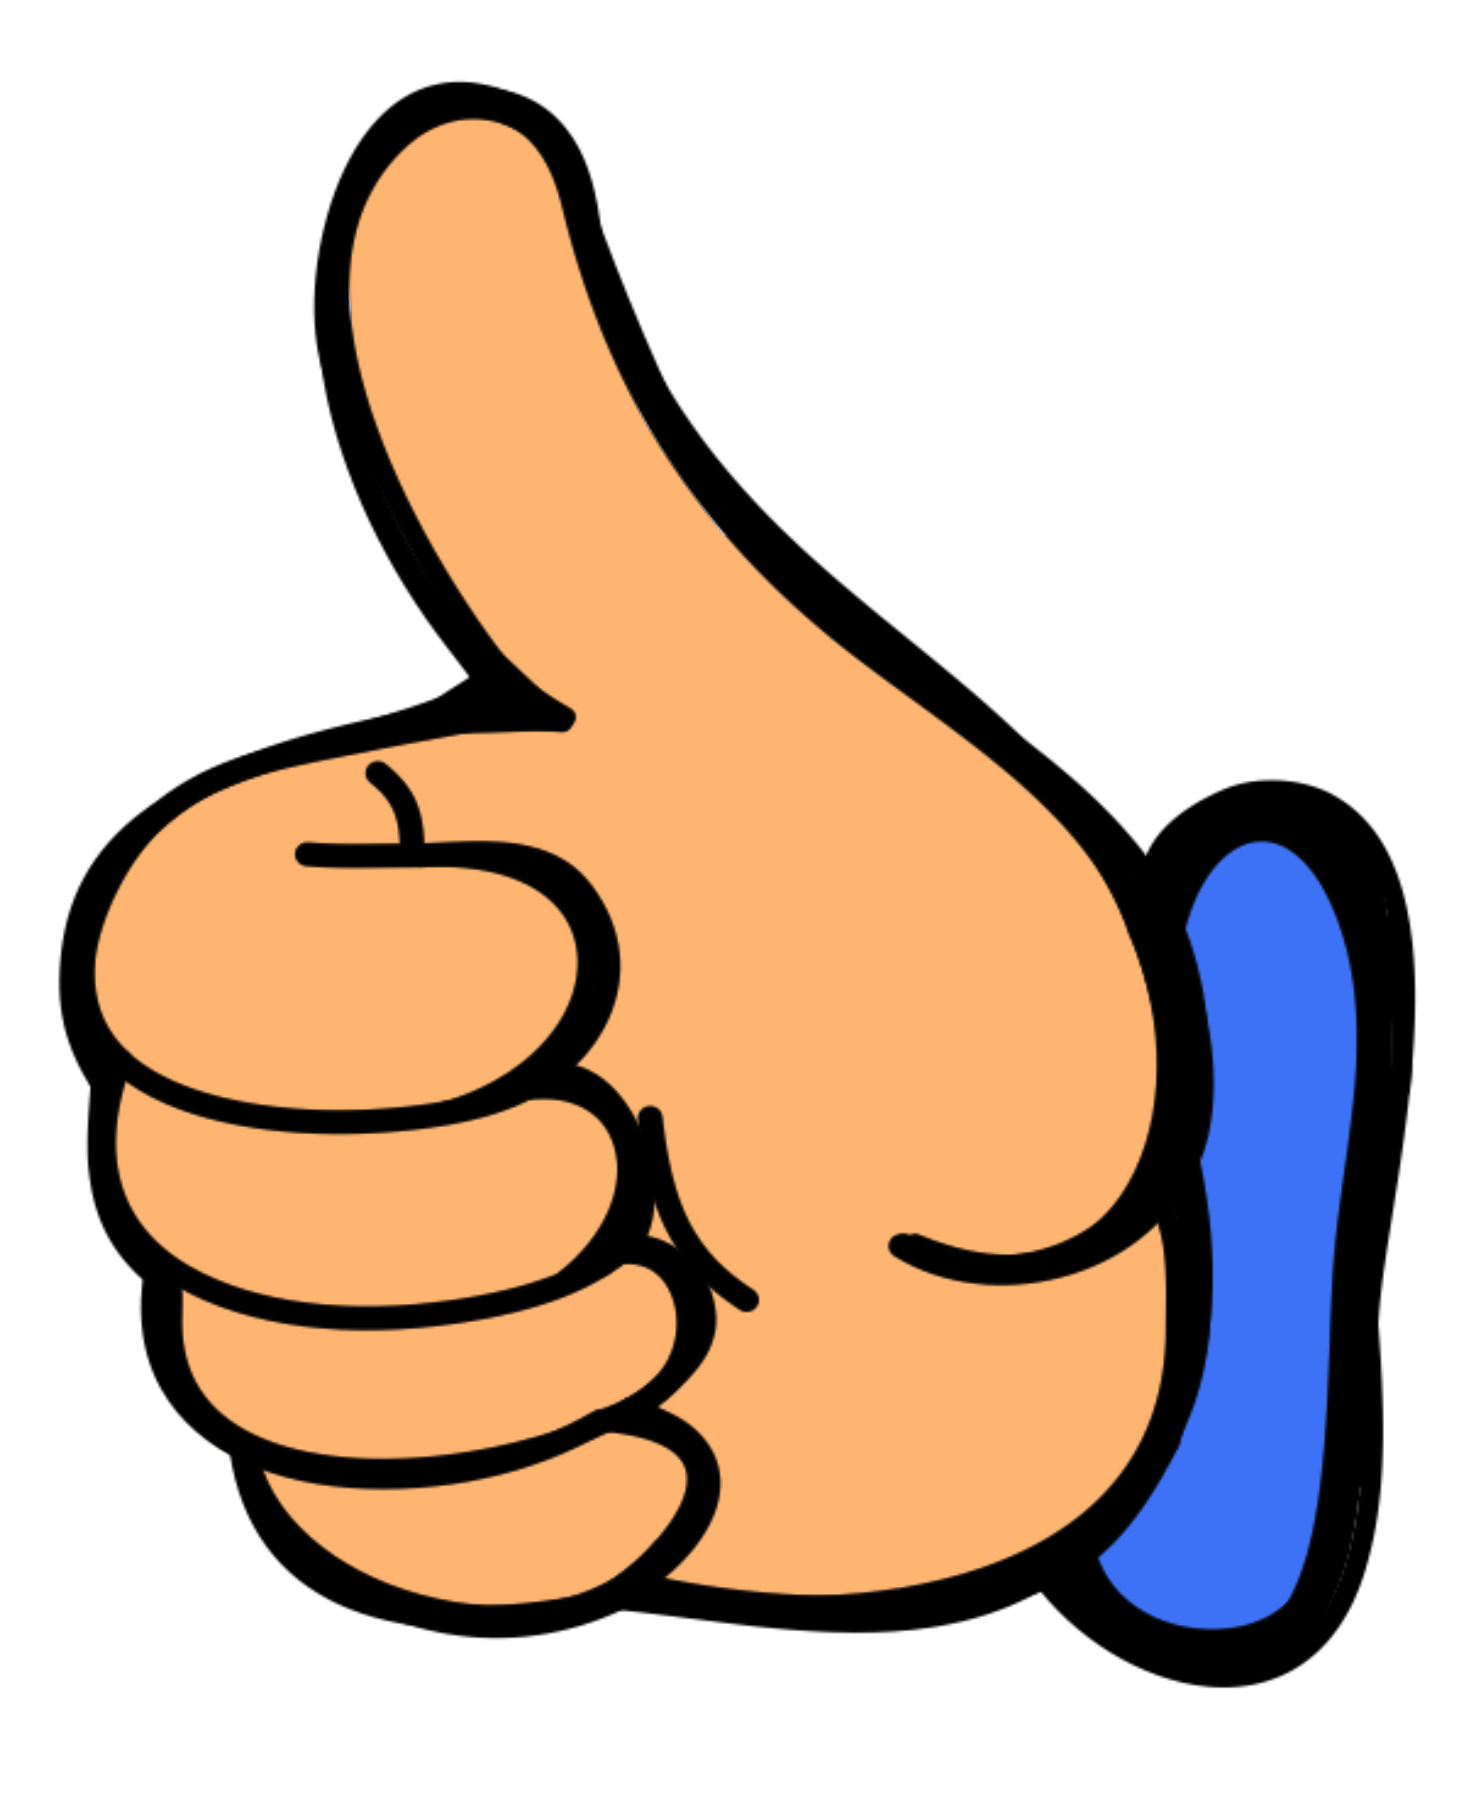 Clipart thumbs up with money clipart download Pin by Carolina Bracho on Dibujos para hacer | Pinterest | Clip art clipart download